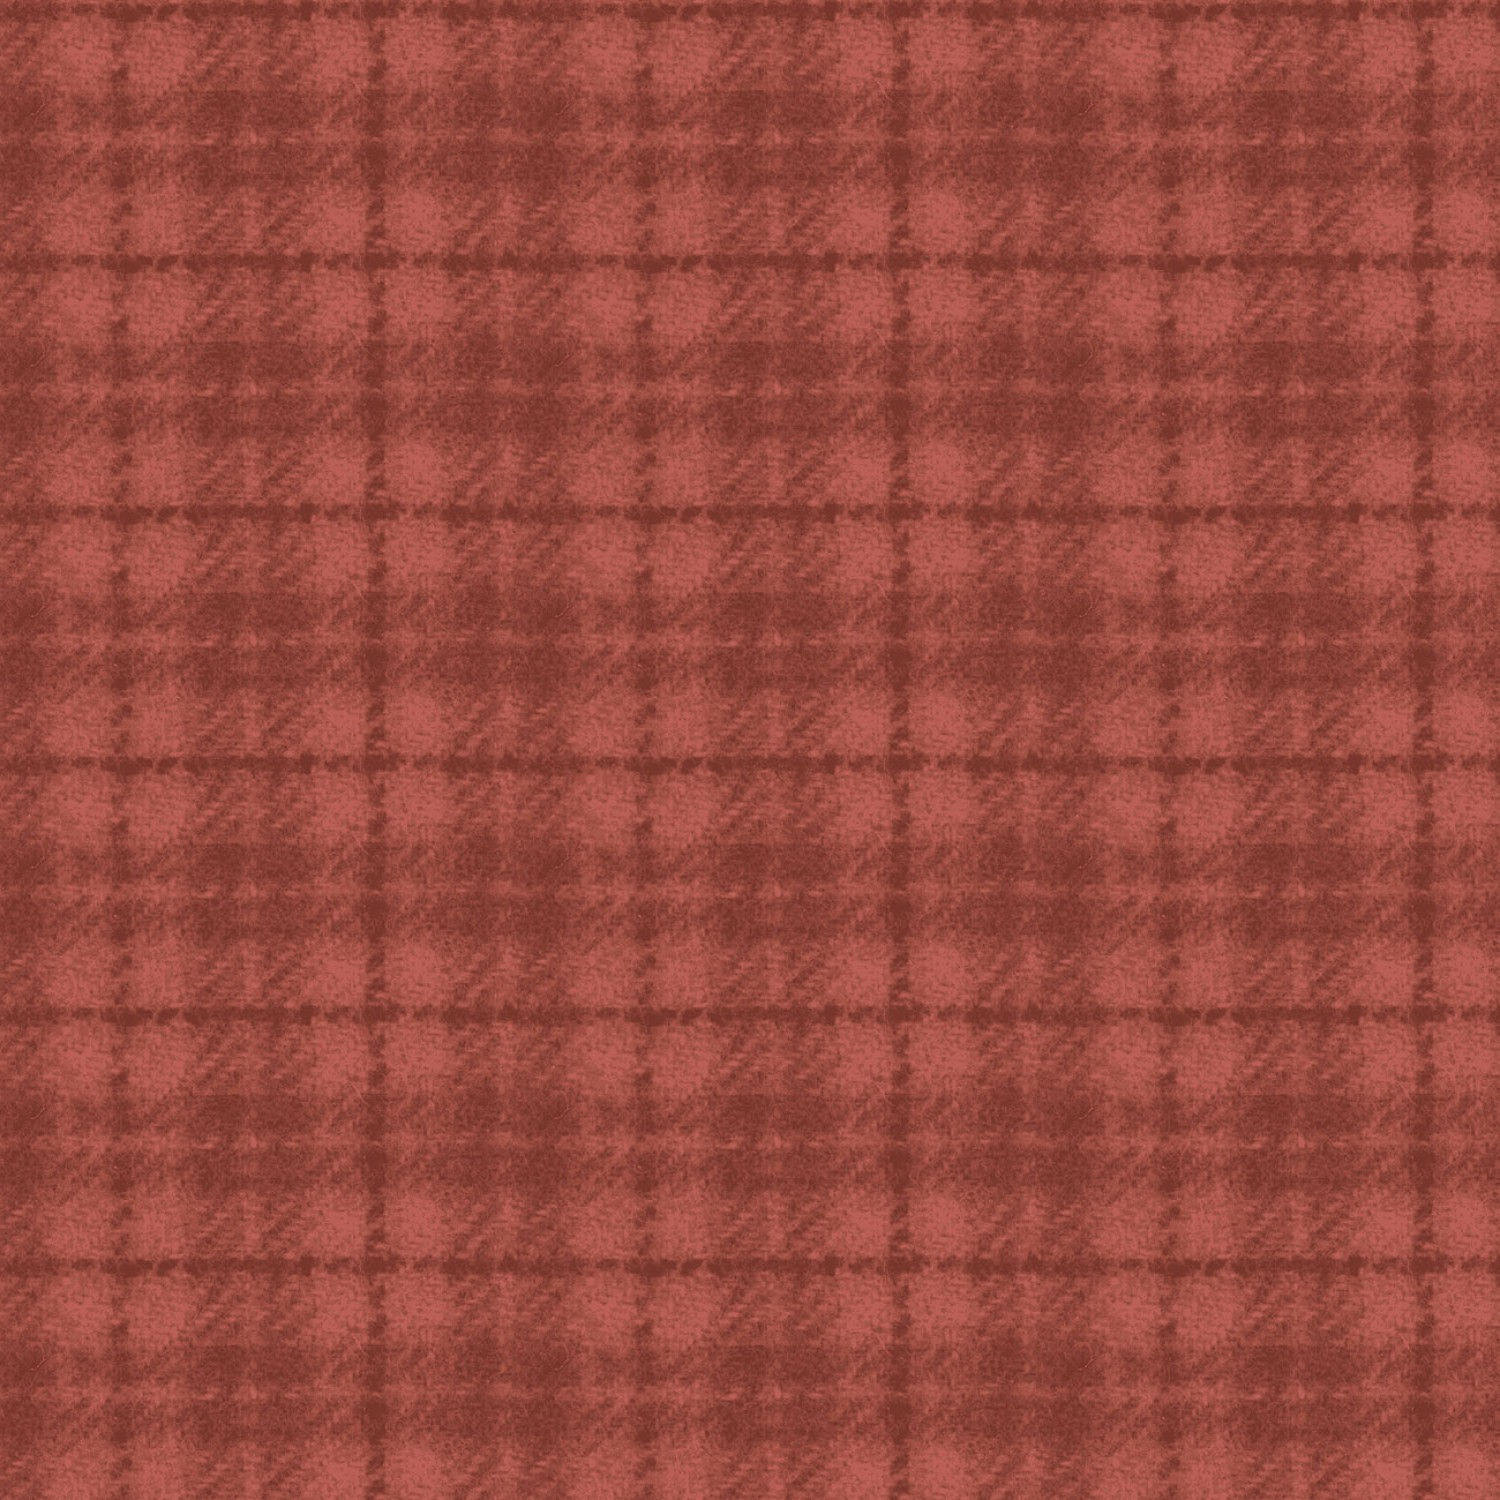 Maywood Flannel Woolies F18502 RO2 Red Orange Plaid